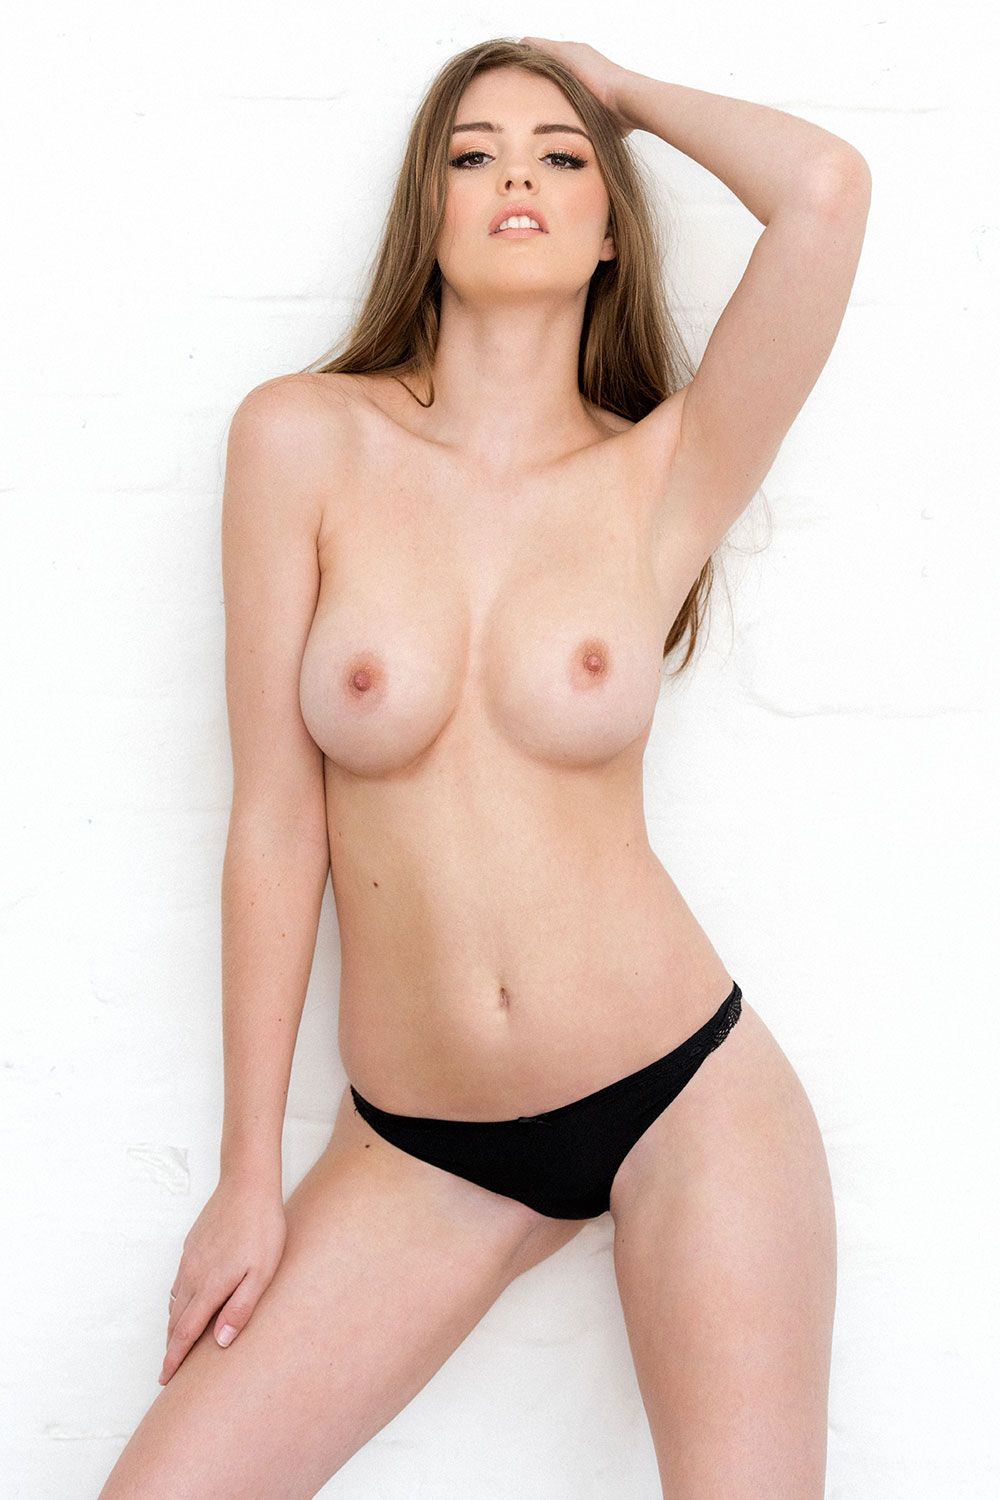 Topless Photos Of Rosie D...